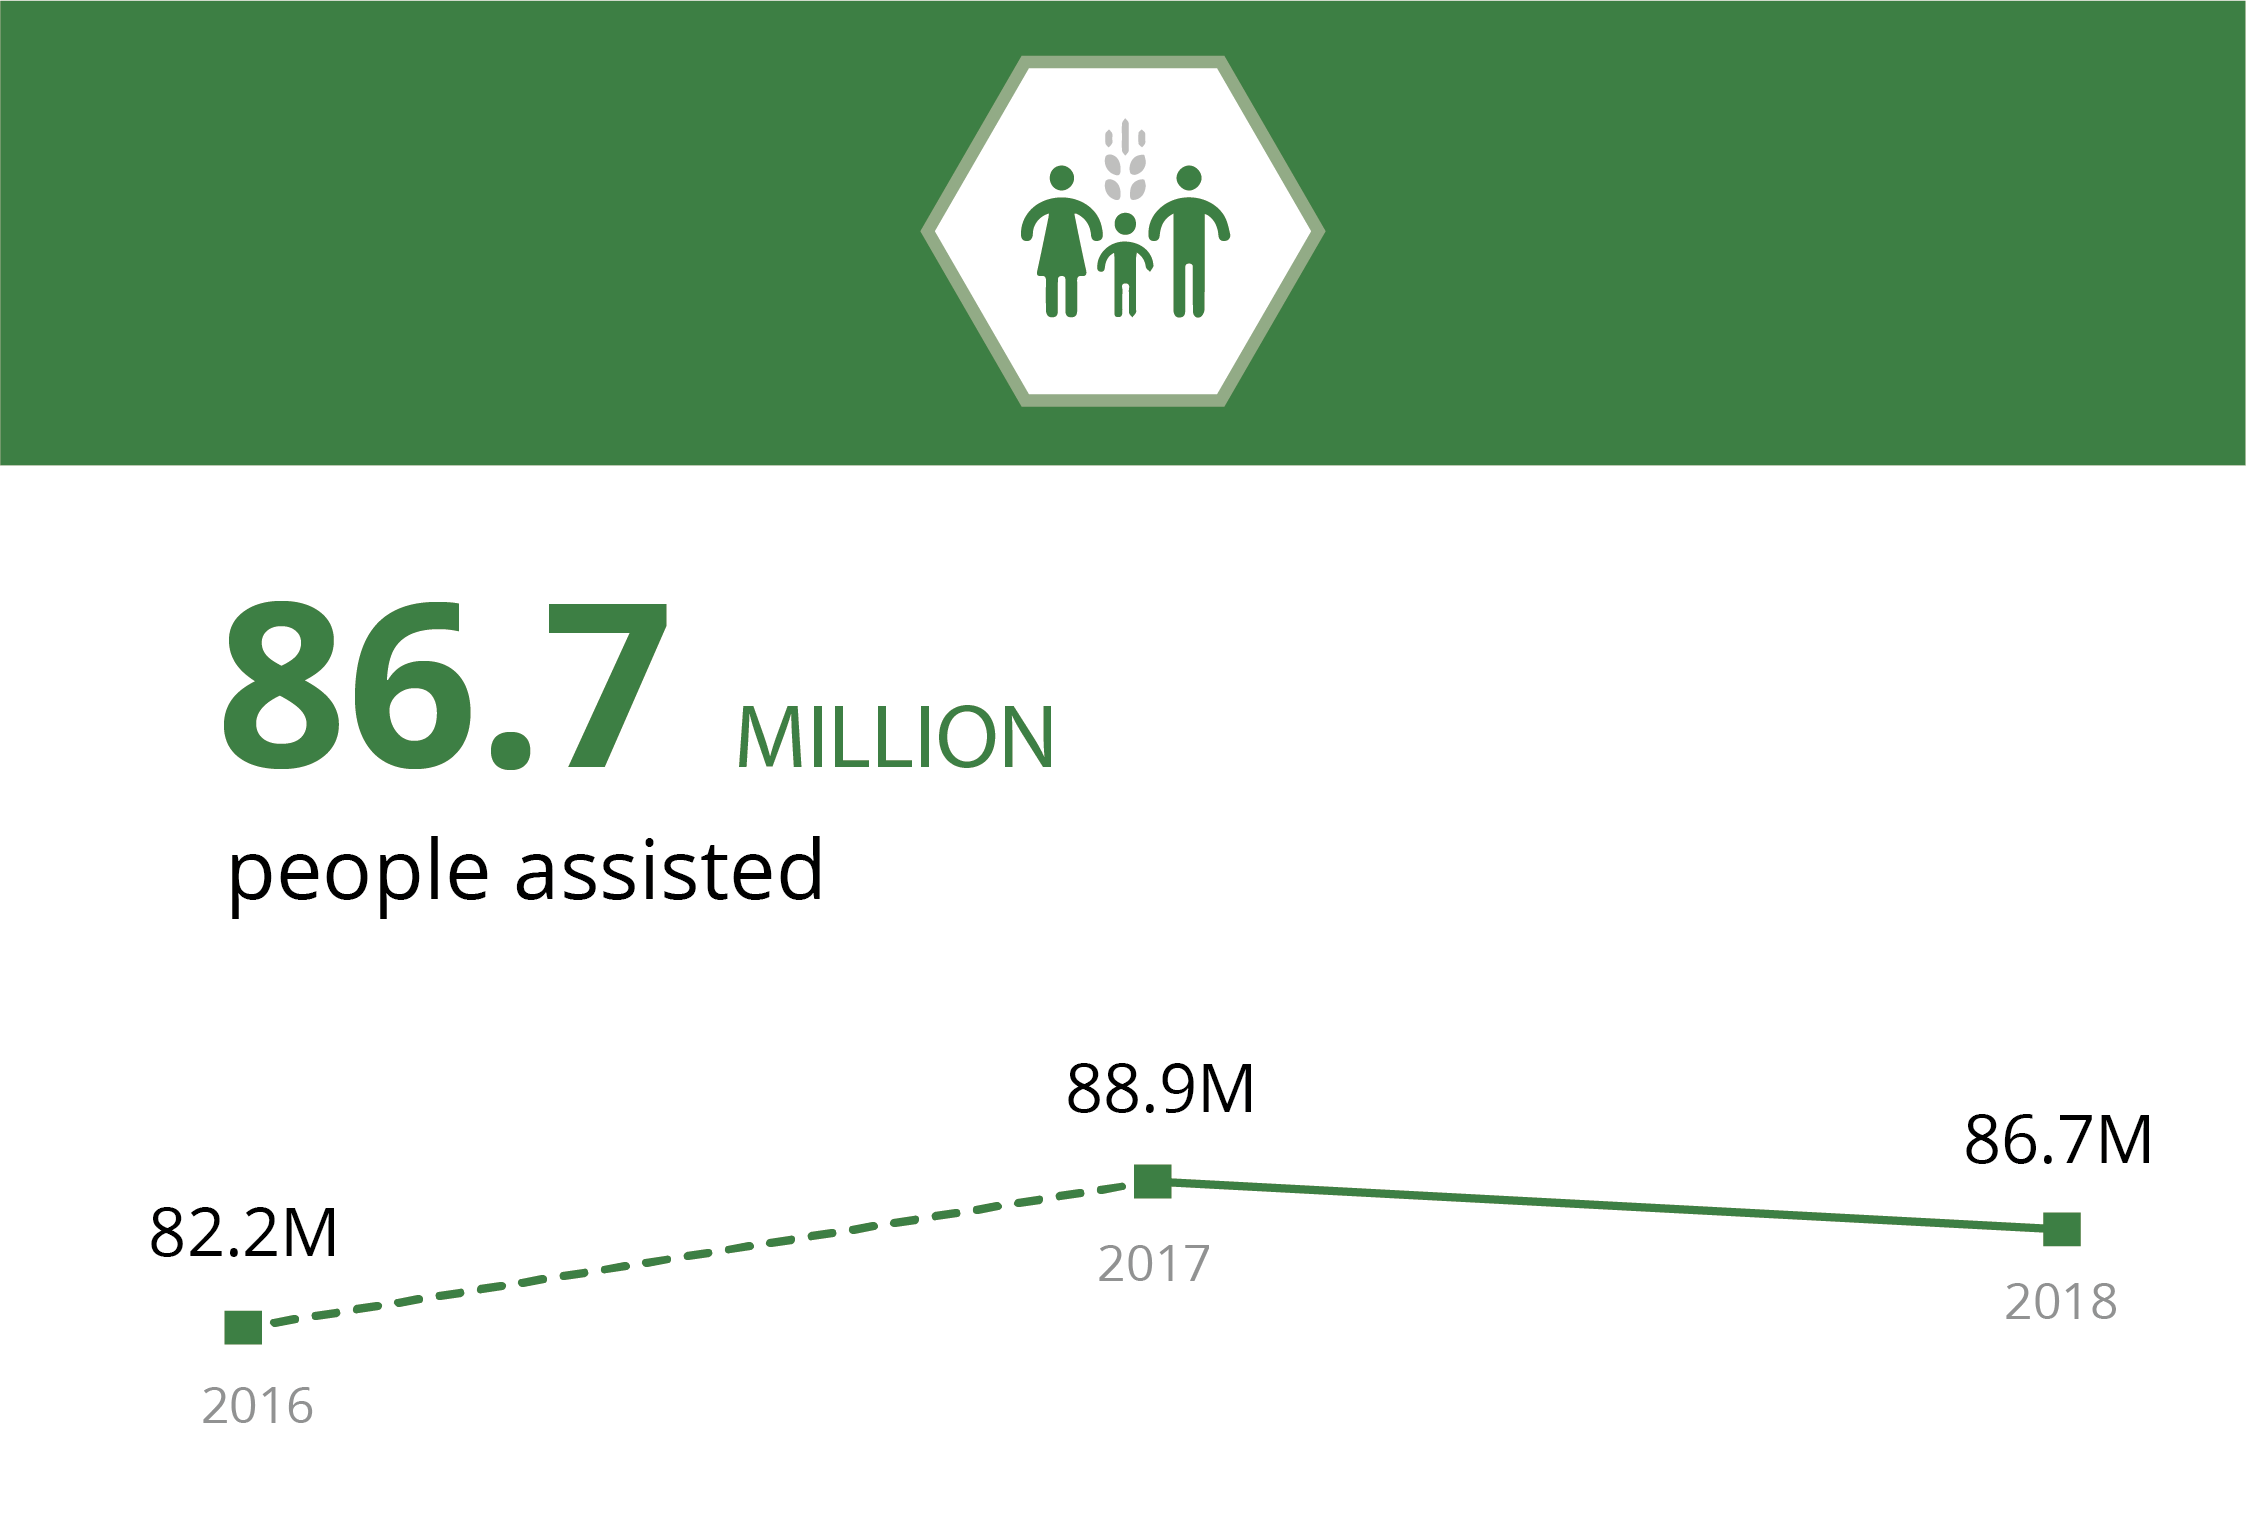 86.7 million people assisted